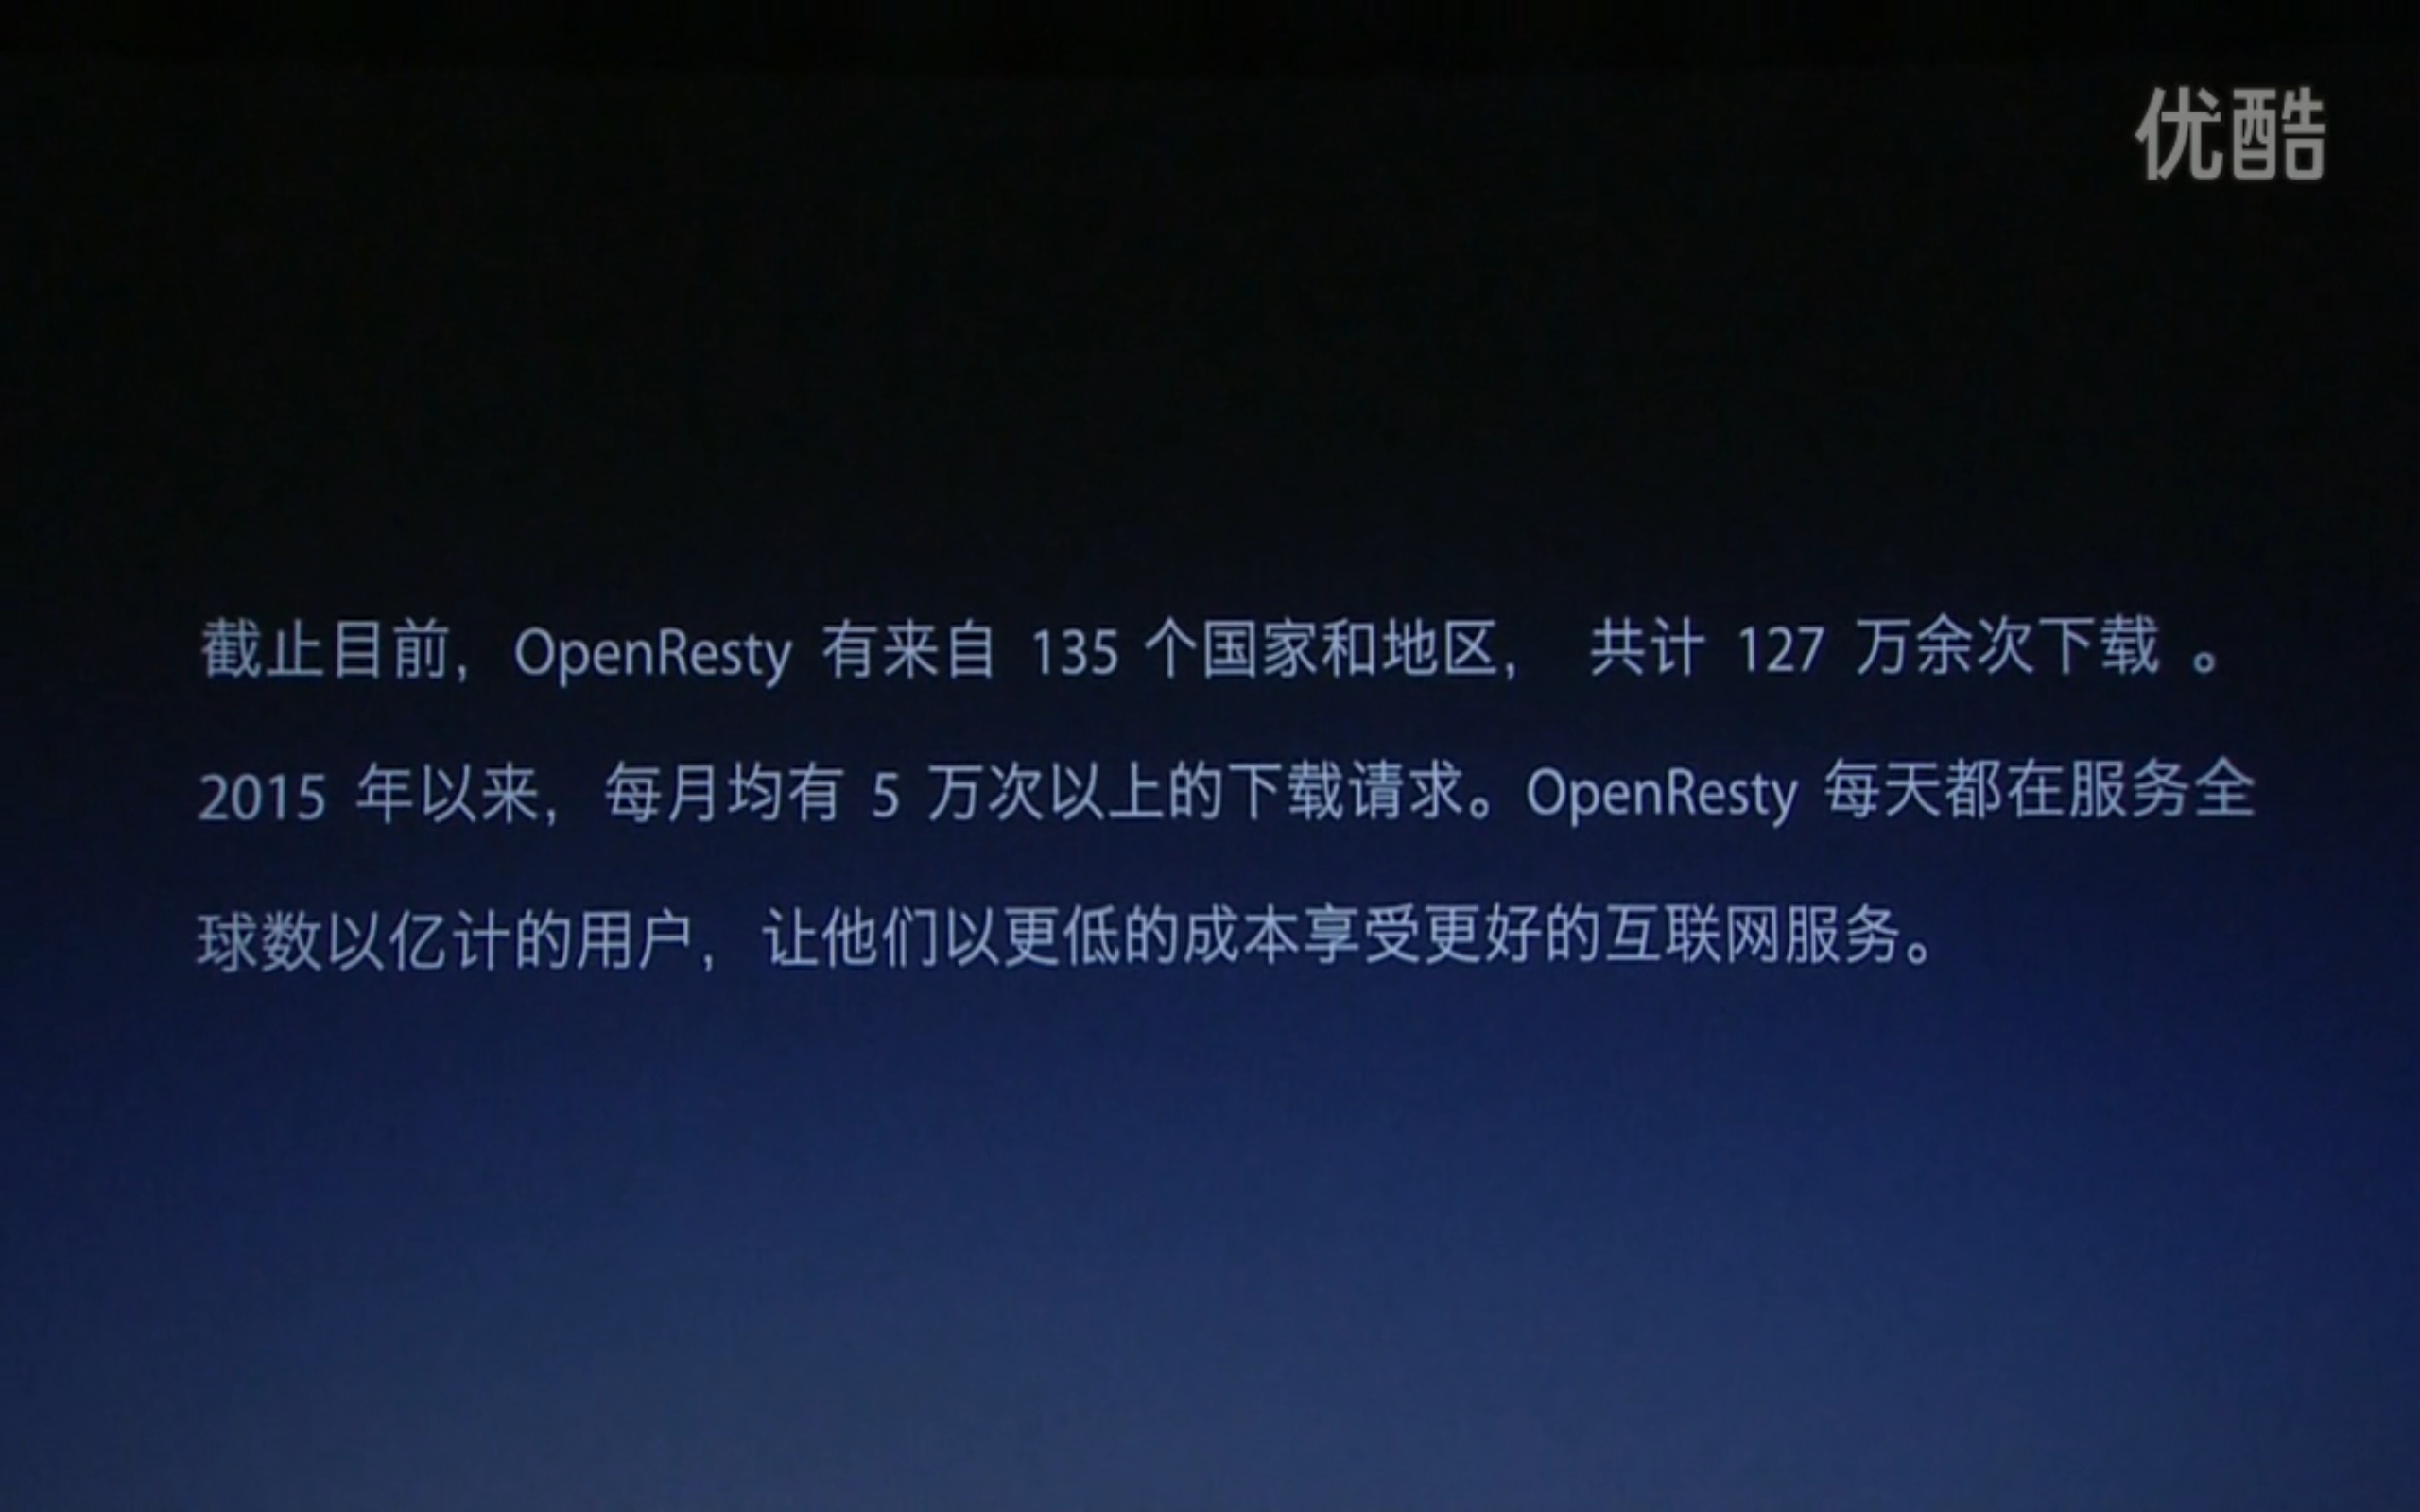 openresty-3